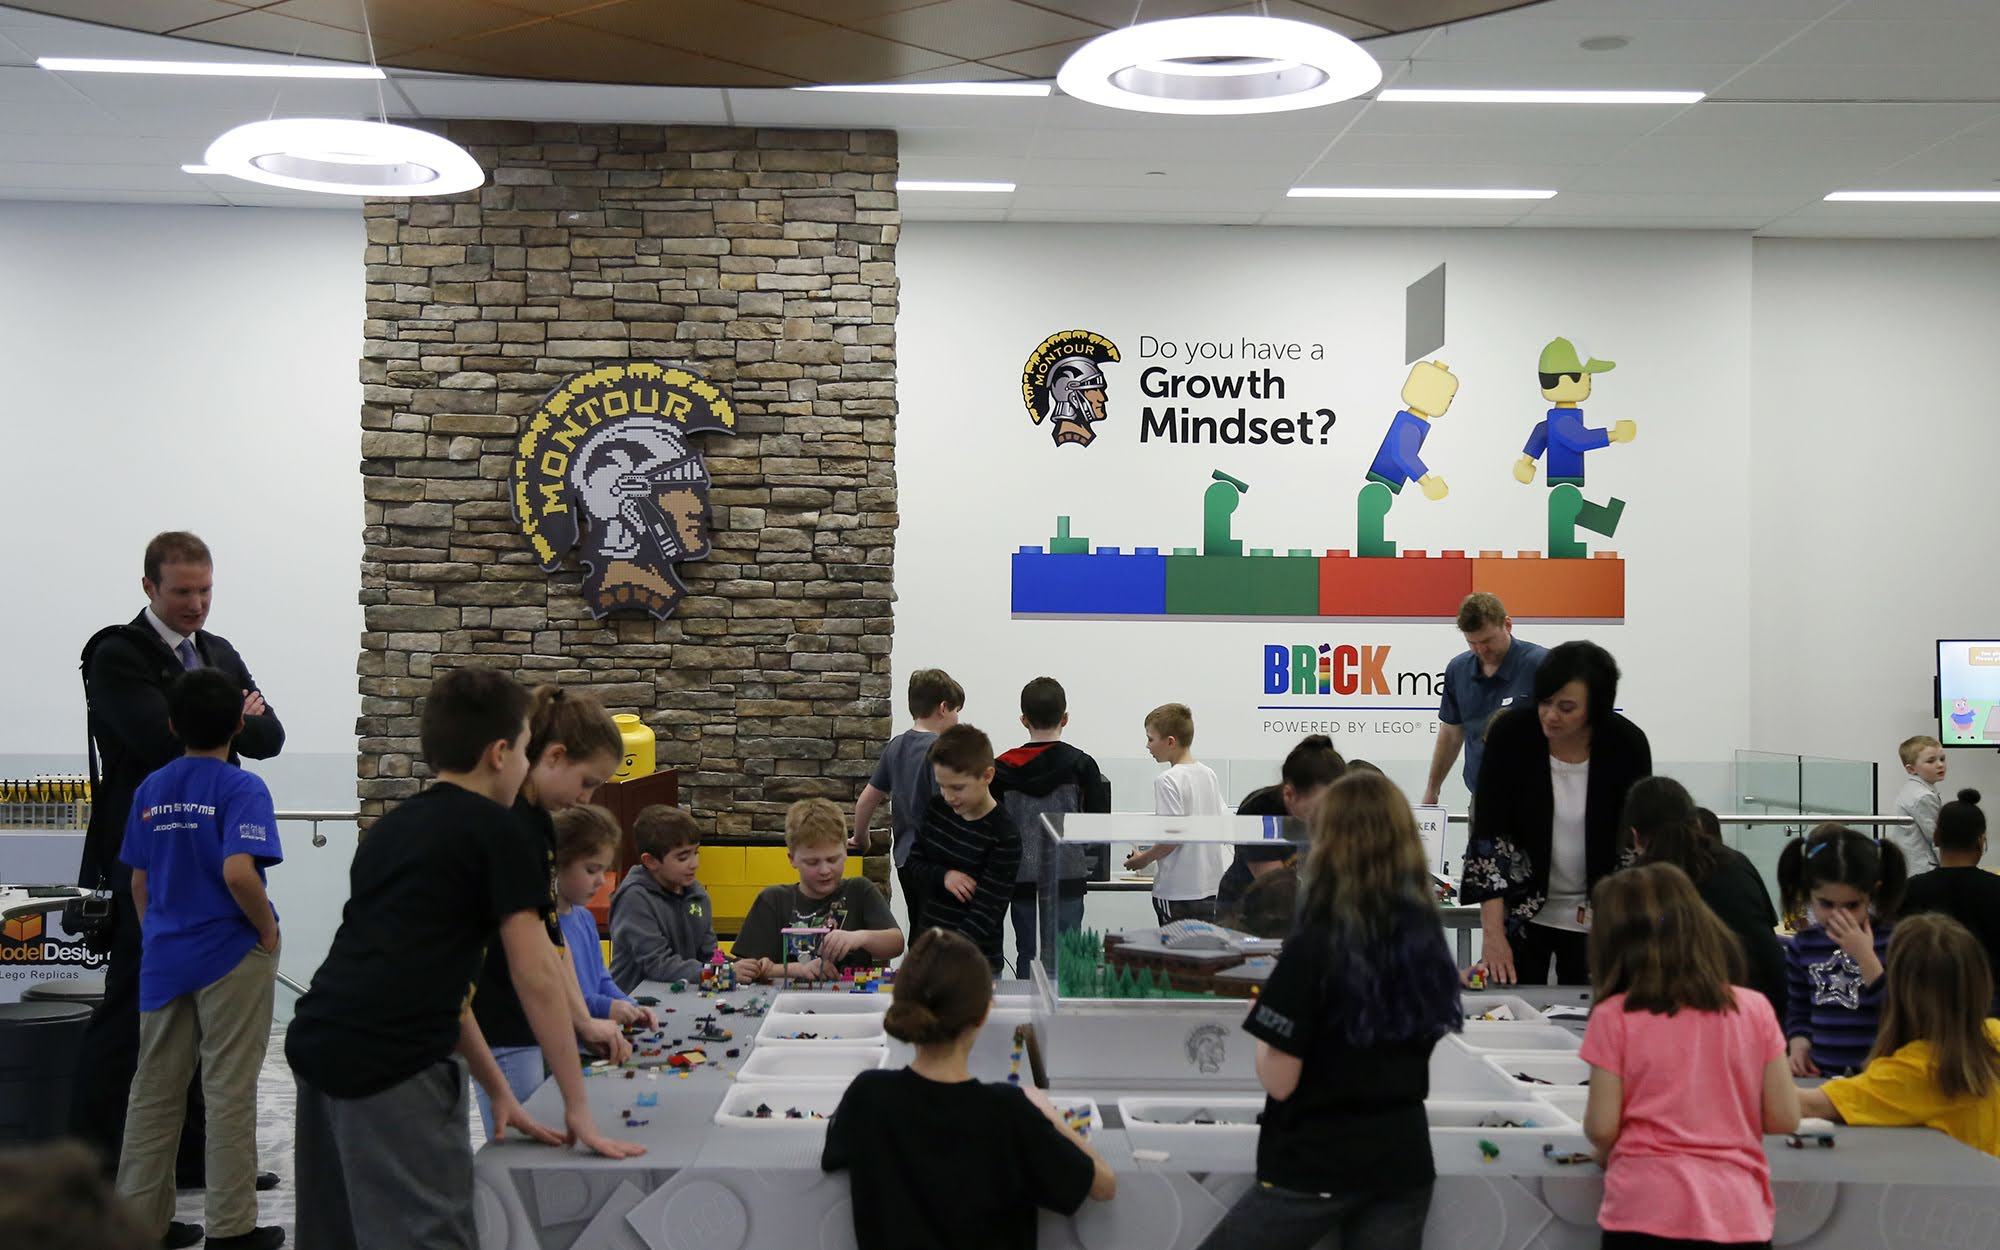 Students build with Legos inside the Brick Makerspace, a room filled with Legos and other building materials and equipment at Montour Elementary on Feb. 22, 2018.